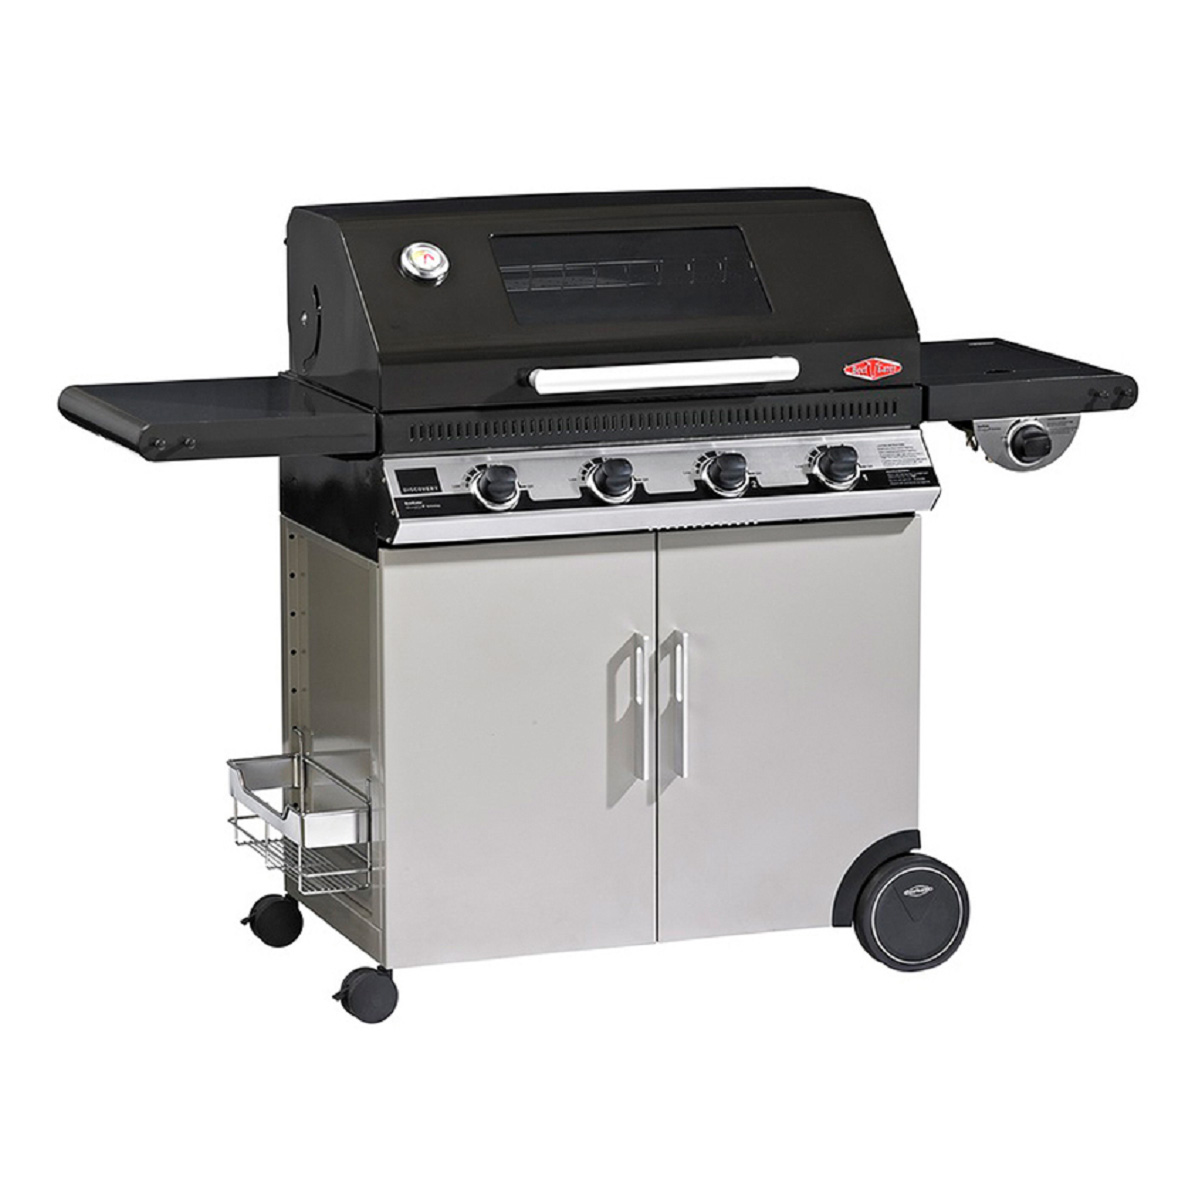 BeefEater Outdoor BBQ 47842